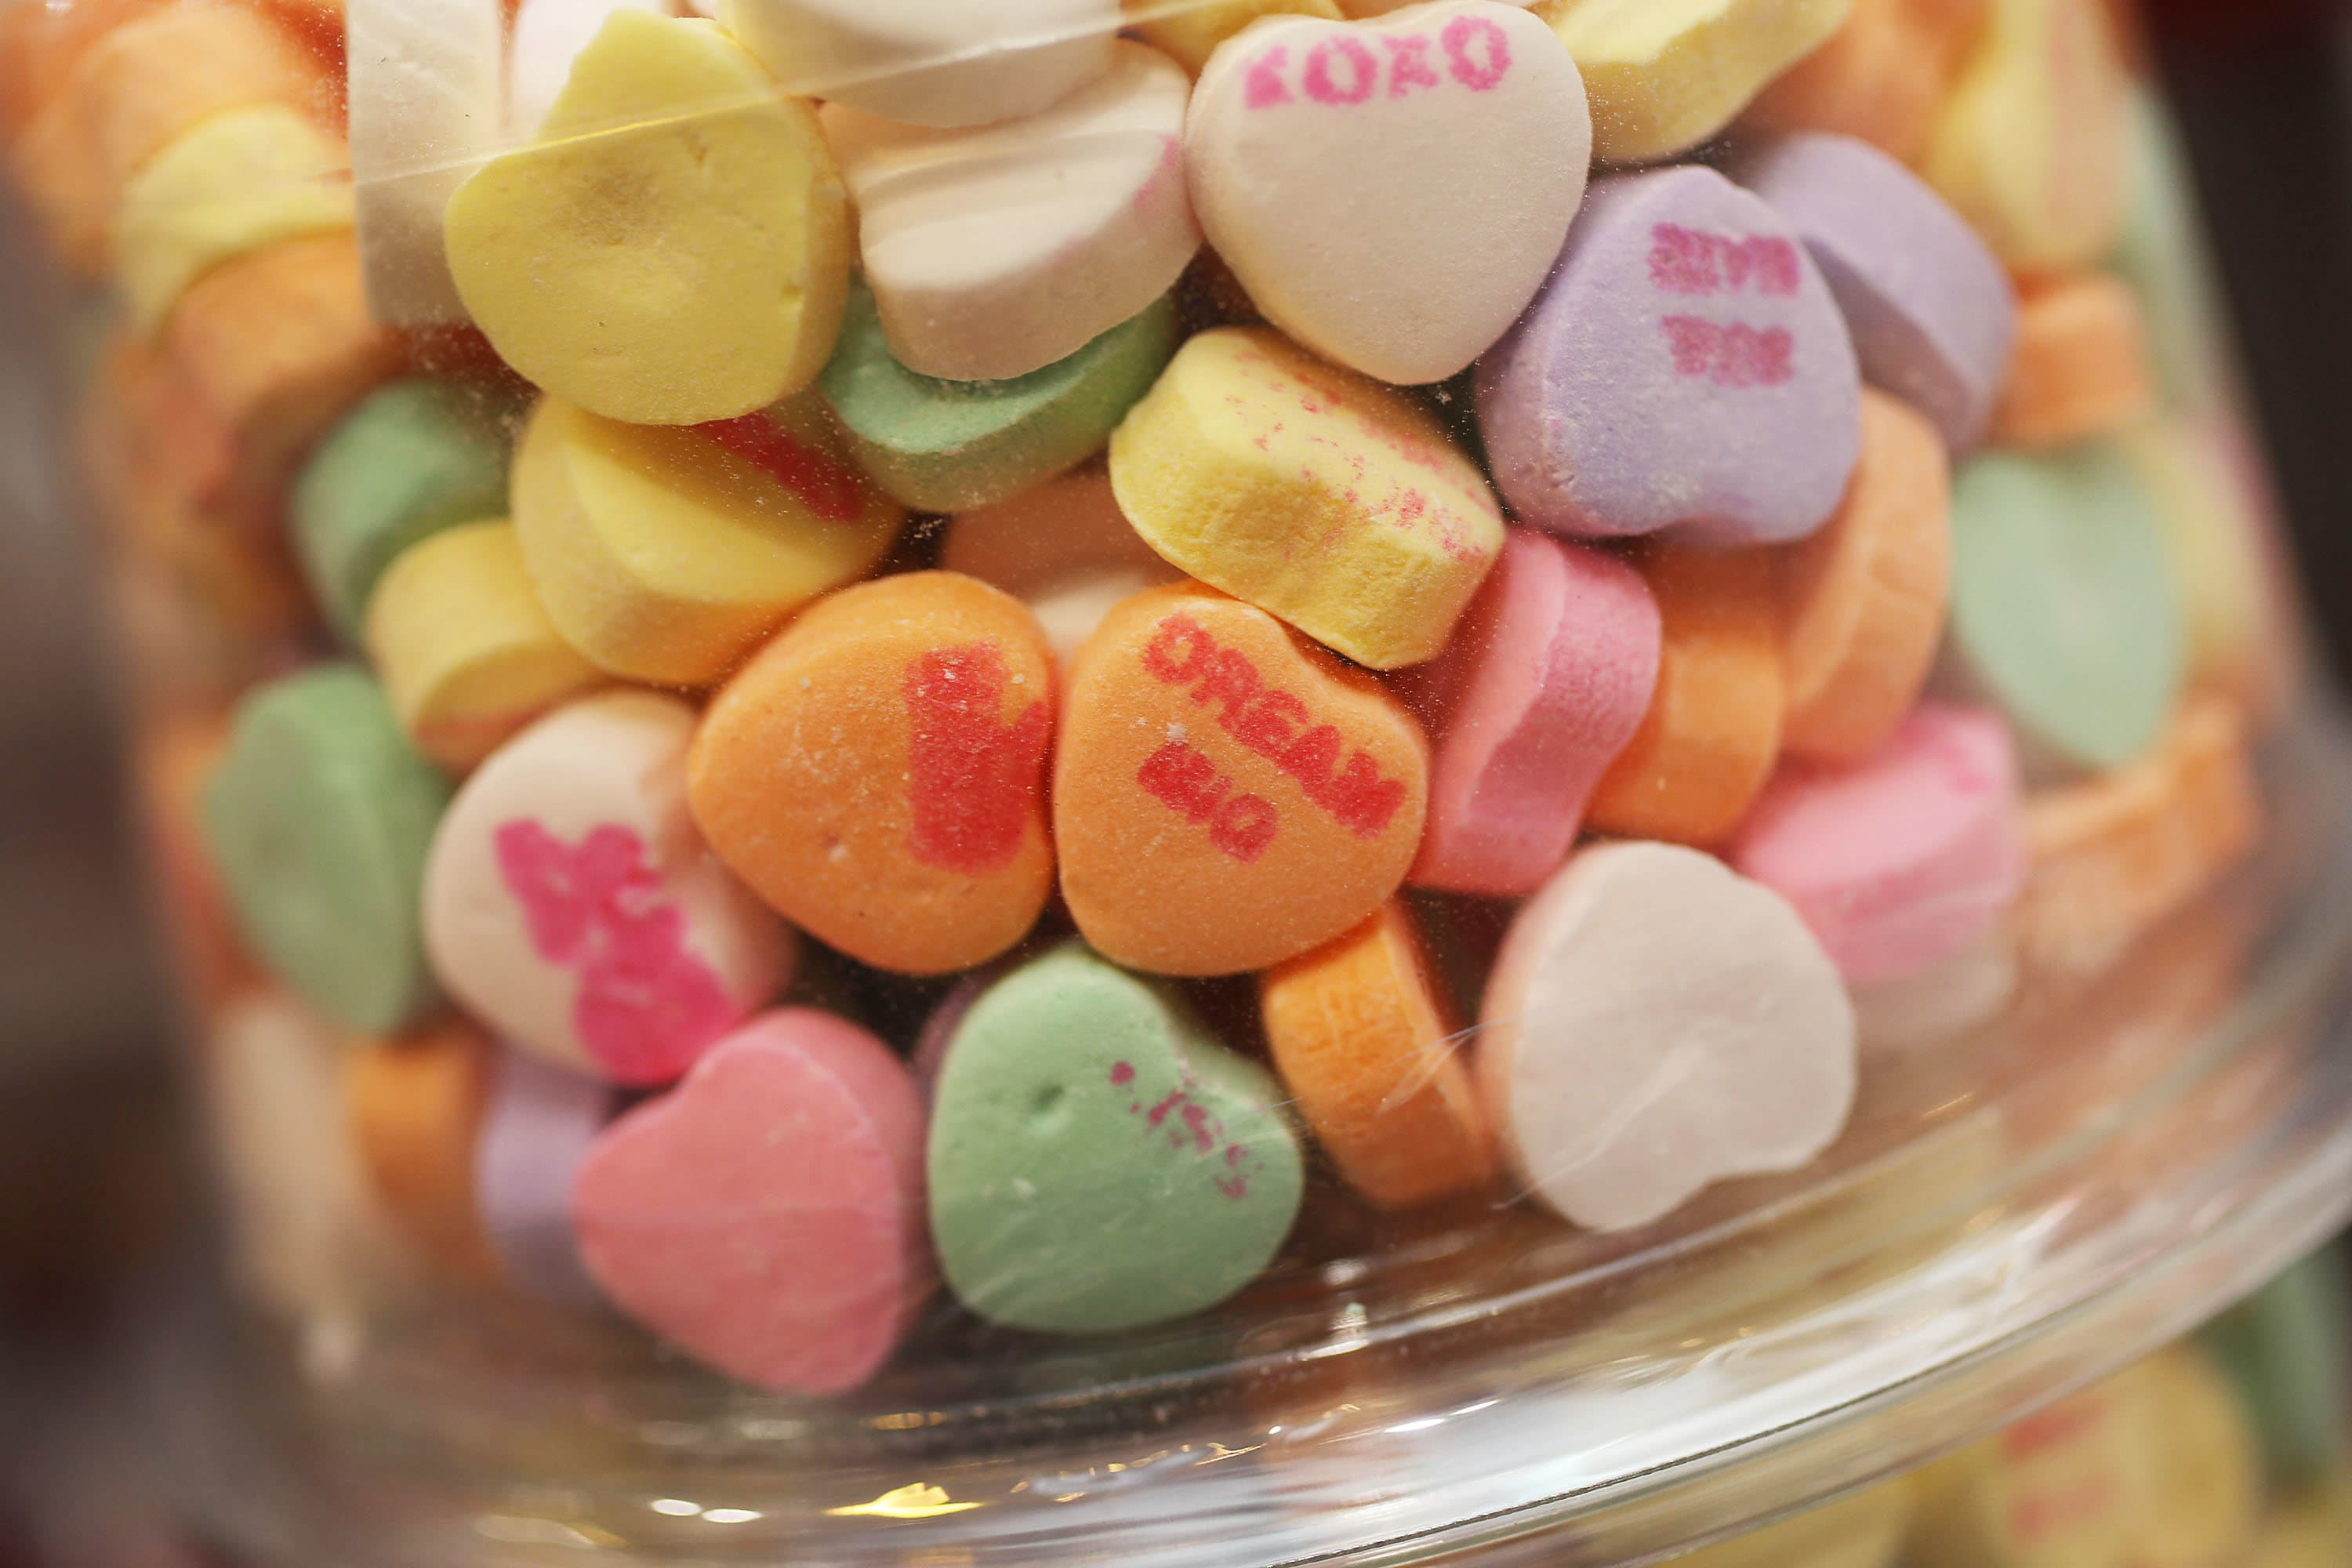 America's favorite Valentine's Day candy is back, but not without a few hiccups